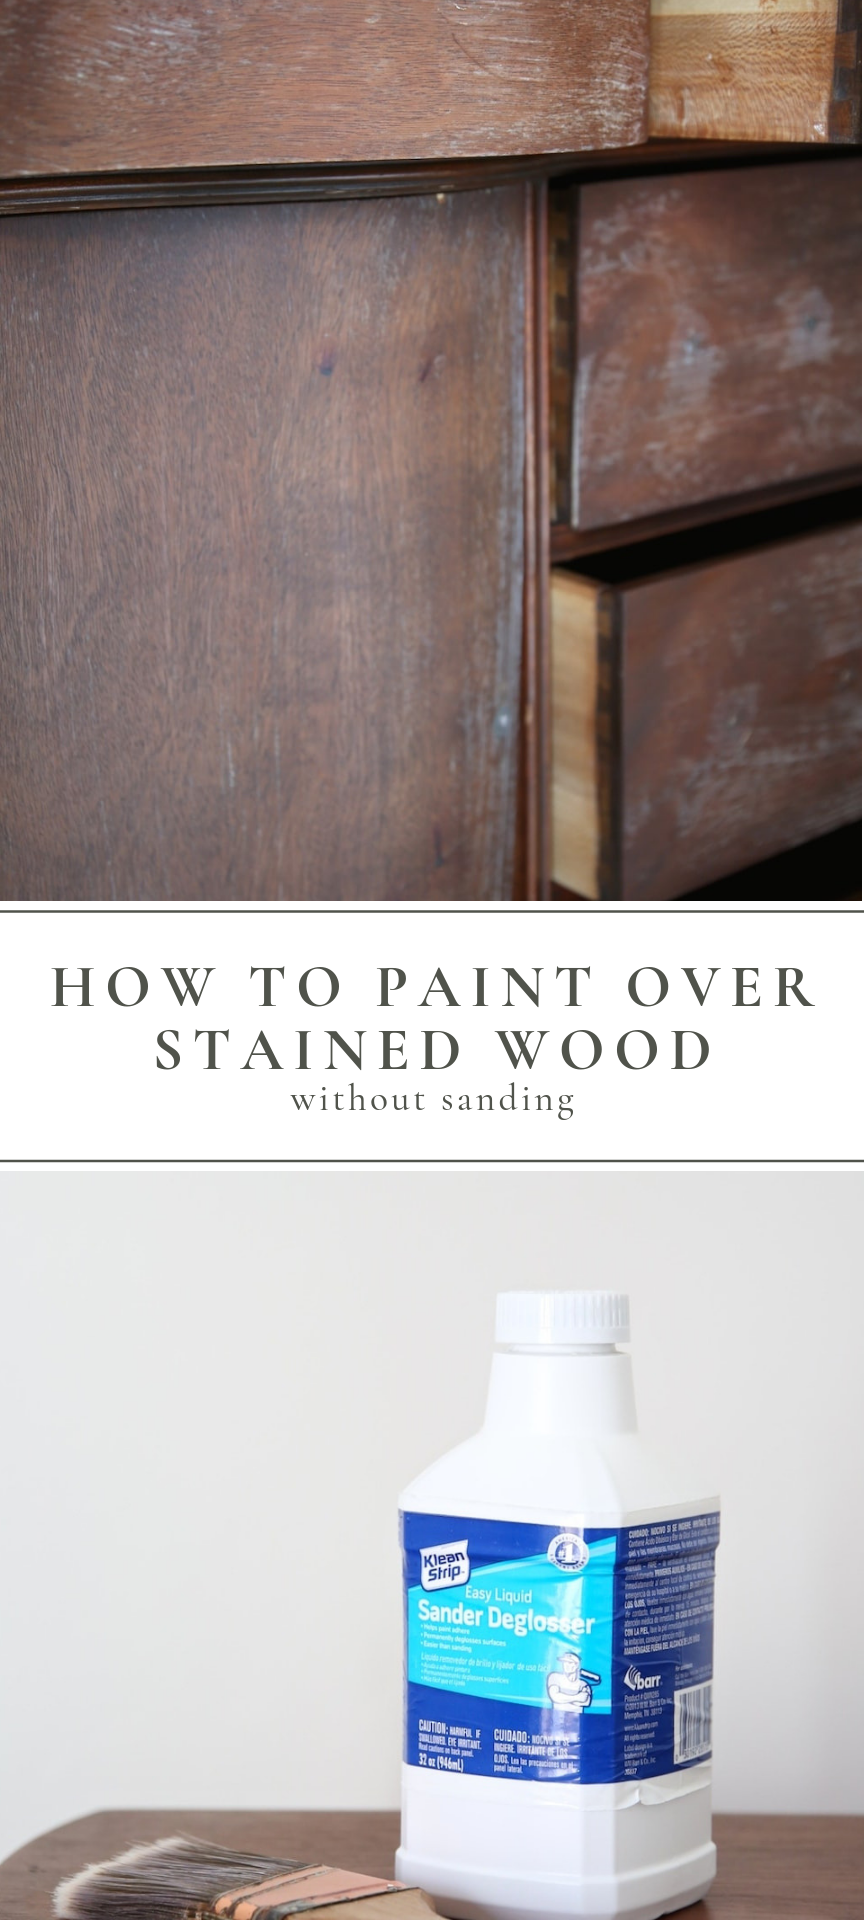 Quick Painting Tip Paint Over Stained Wood With Liquid Sandpaper Painting Over Stained Wood Staining Wood Paint Stained Wood